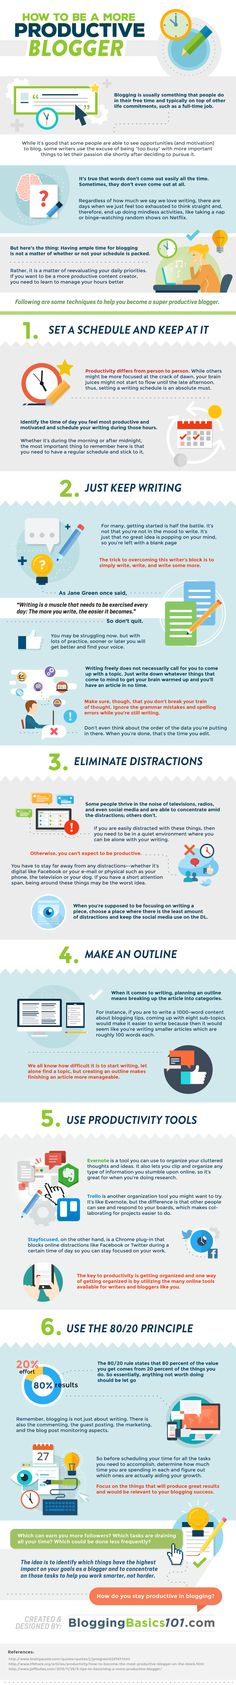 How to Become a Productive Blogger - infographic